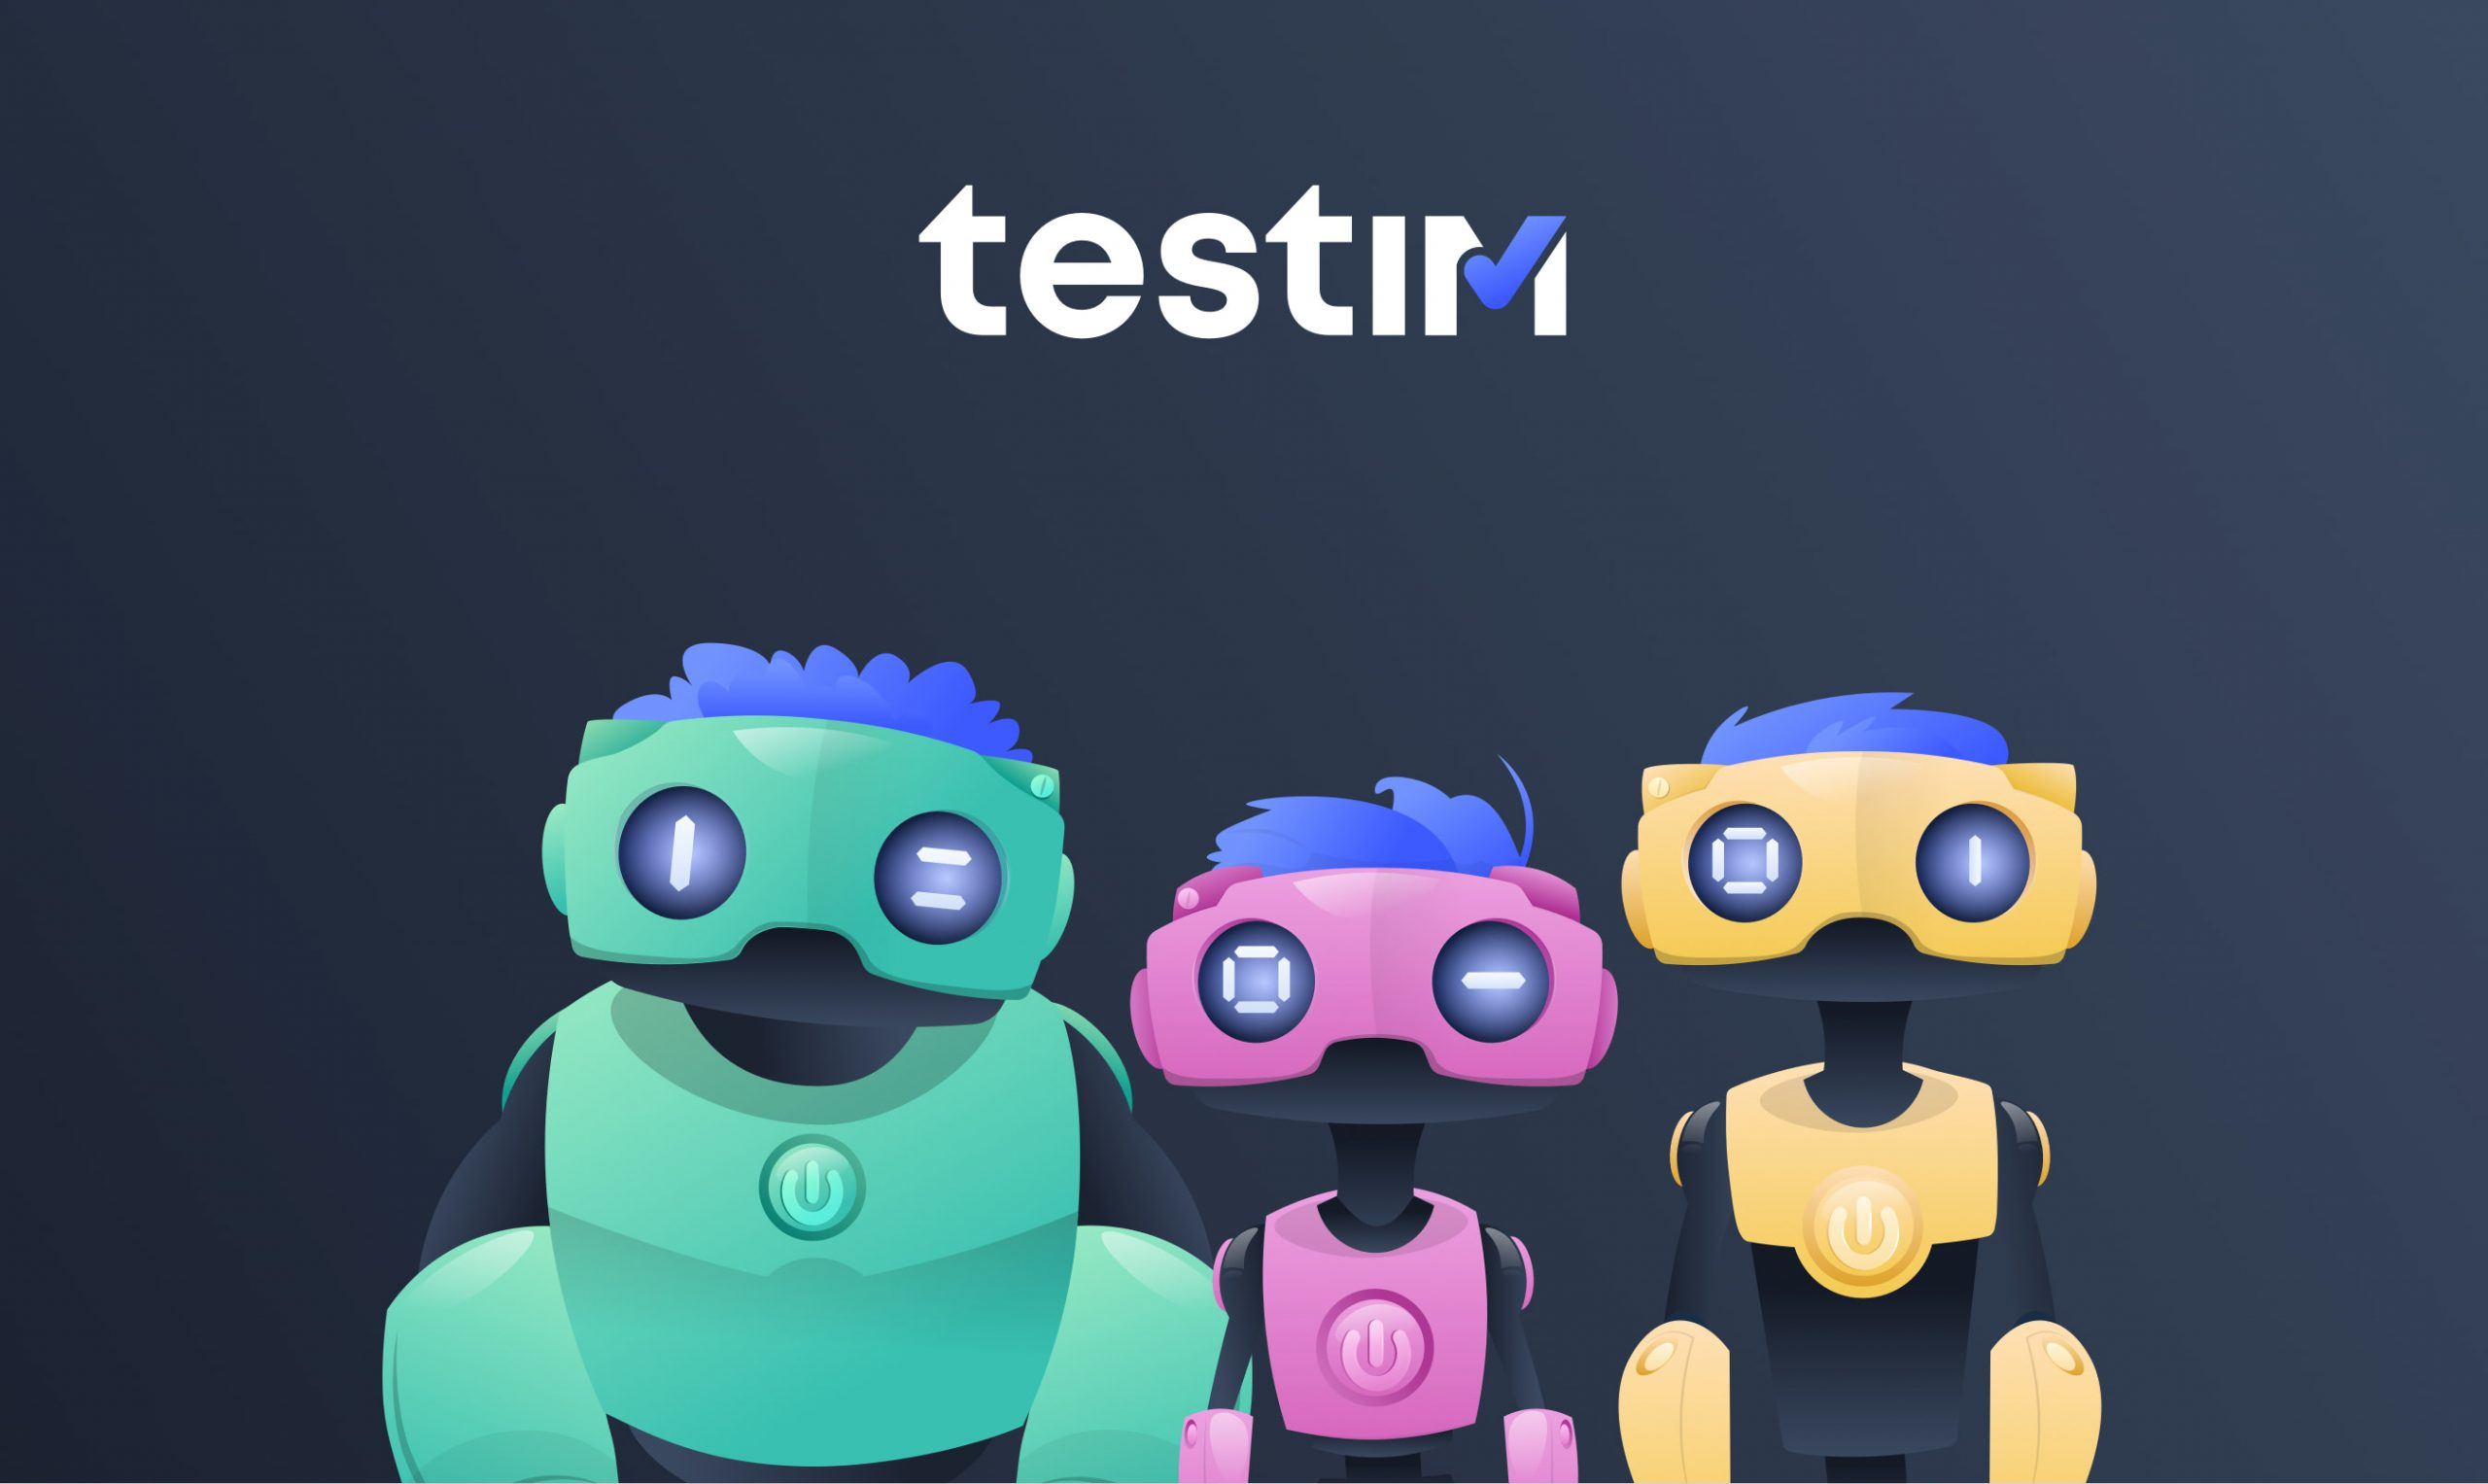 Testim.io marketing design